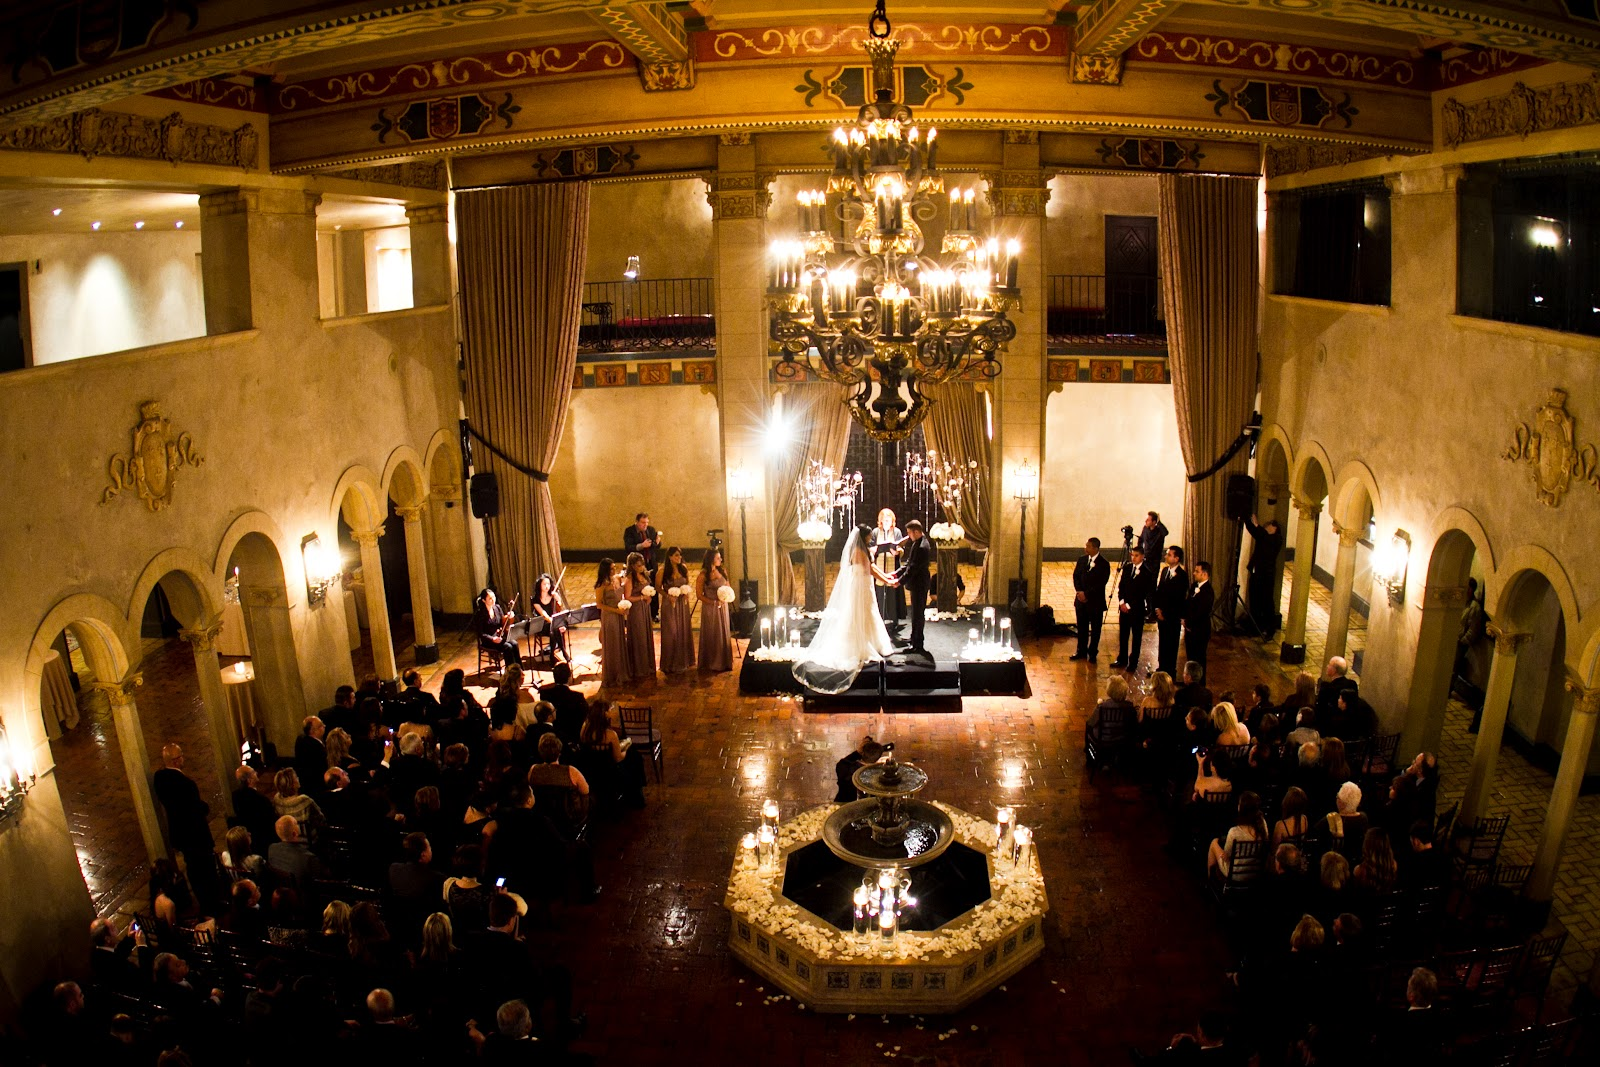 The Ceremony Was Held In Historic Lobby Of Hotel Gorgeous Architecture Is Insane Mixed With Dark Wood Furniture